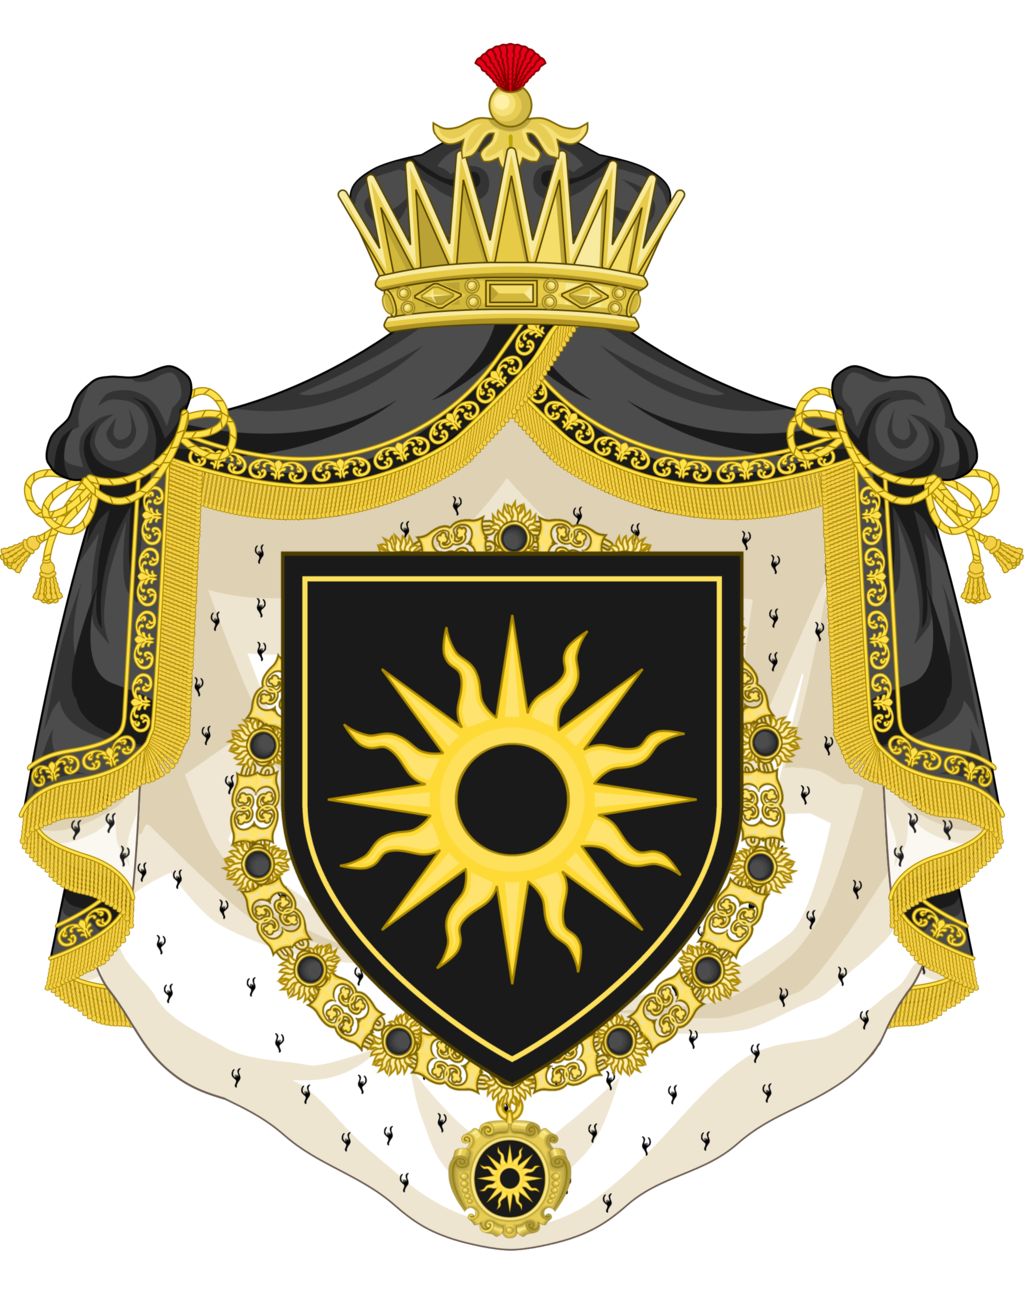 Choix d'une faction - Page 6 1562193775-blason-transparent